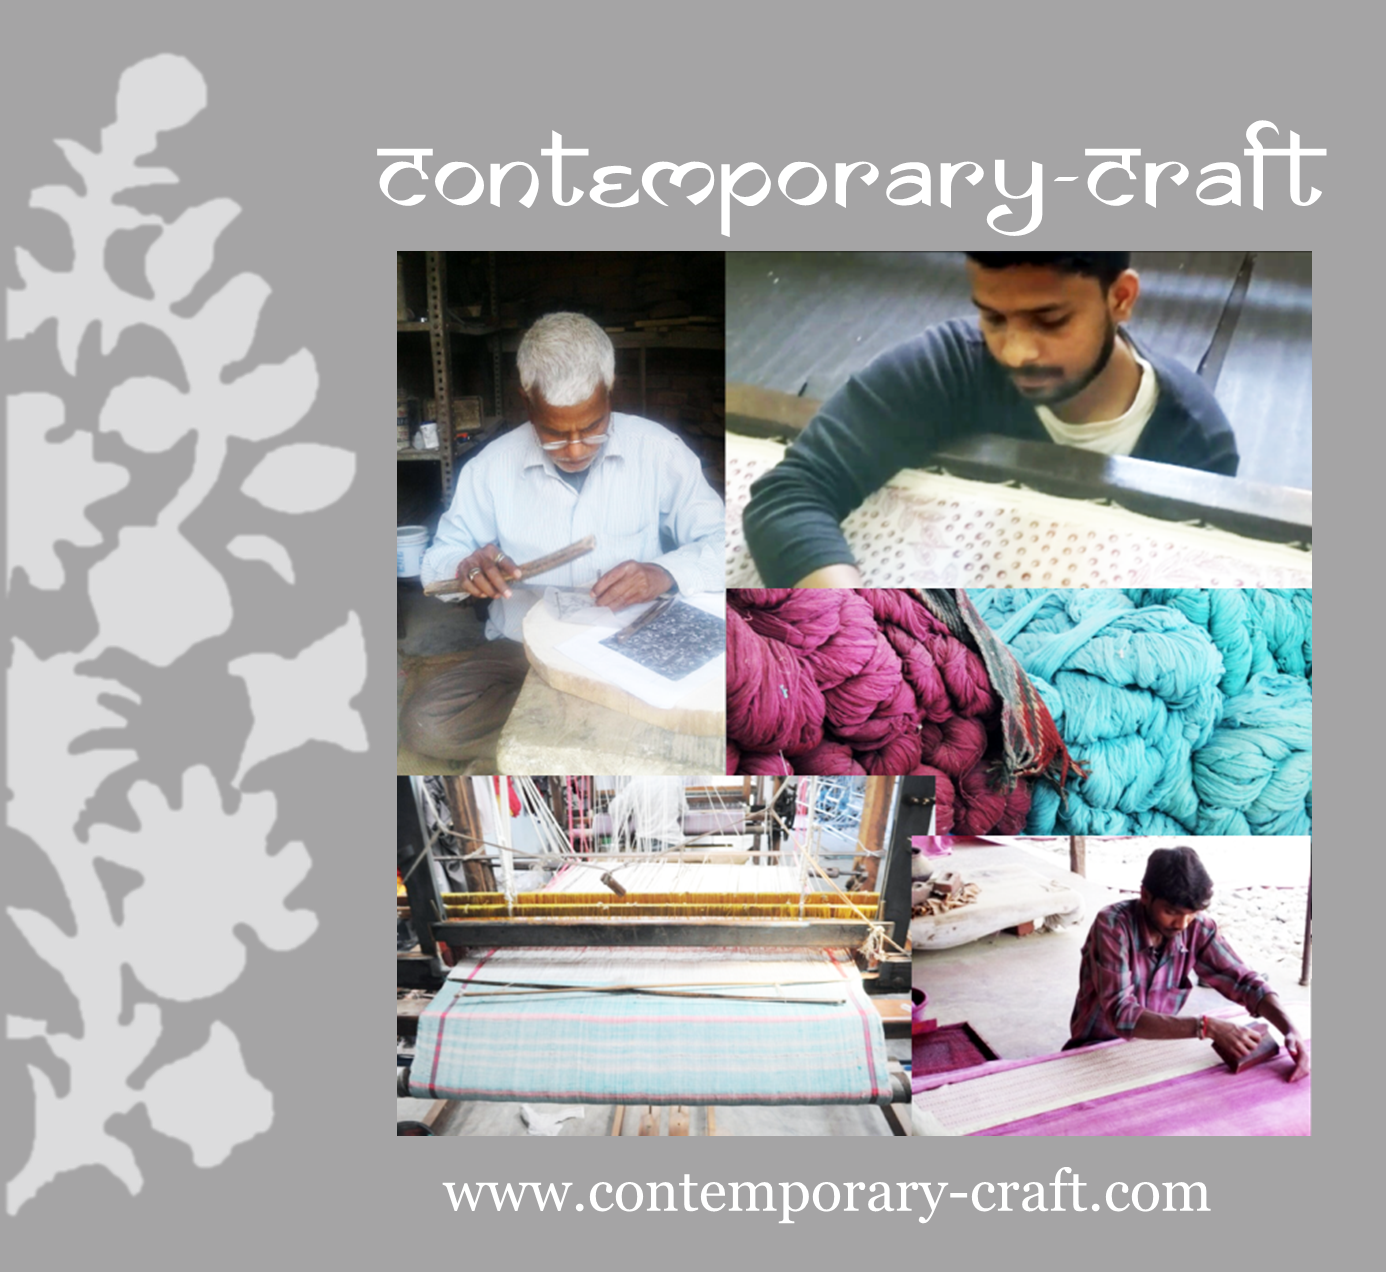 Contemporary-Crafts - Fabrics, Clothing and Accessories that use the art forms of hand block printing, eco-printing and weaving in India to a contemporary aesthetic, preserving the natural processes and handiwork.Website: http://contemporary-craft.com/